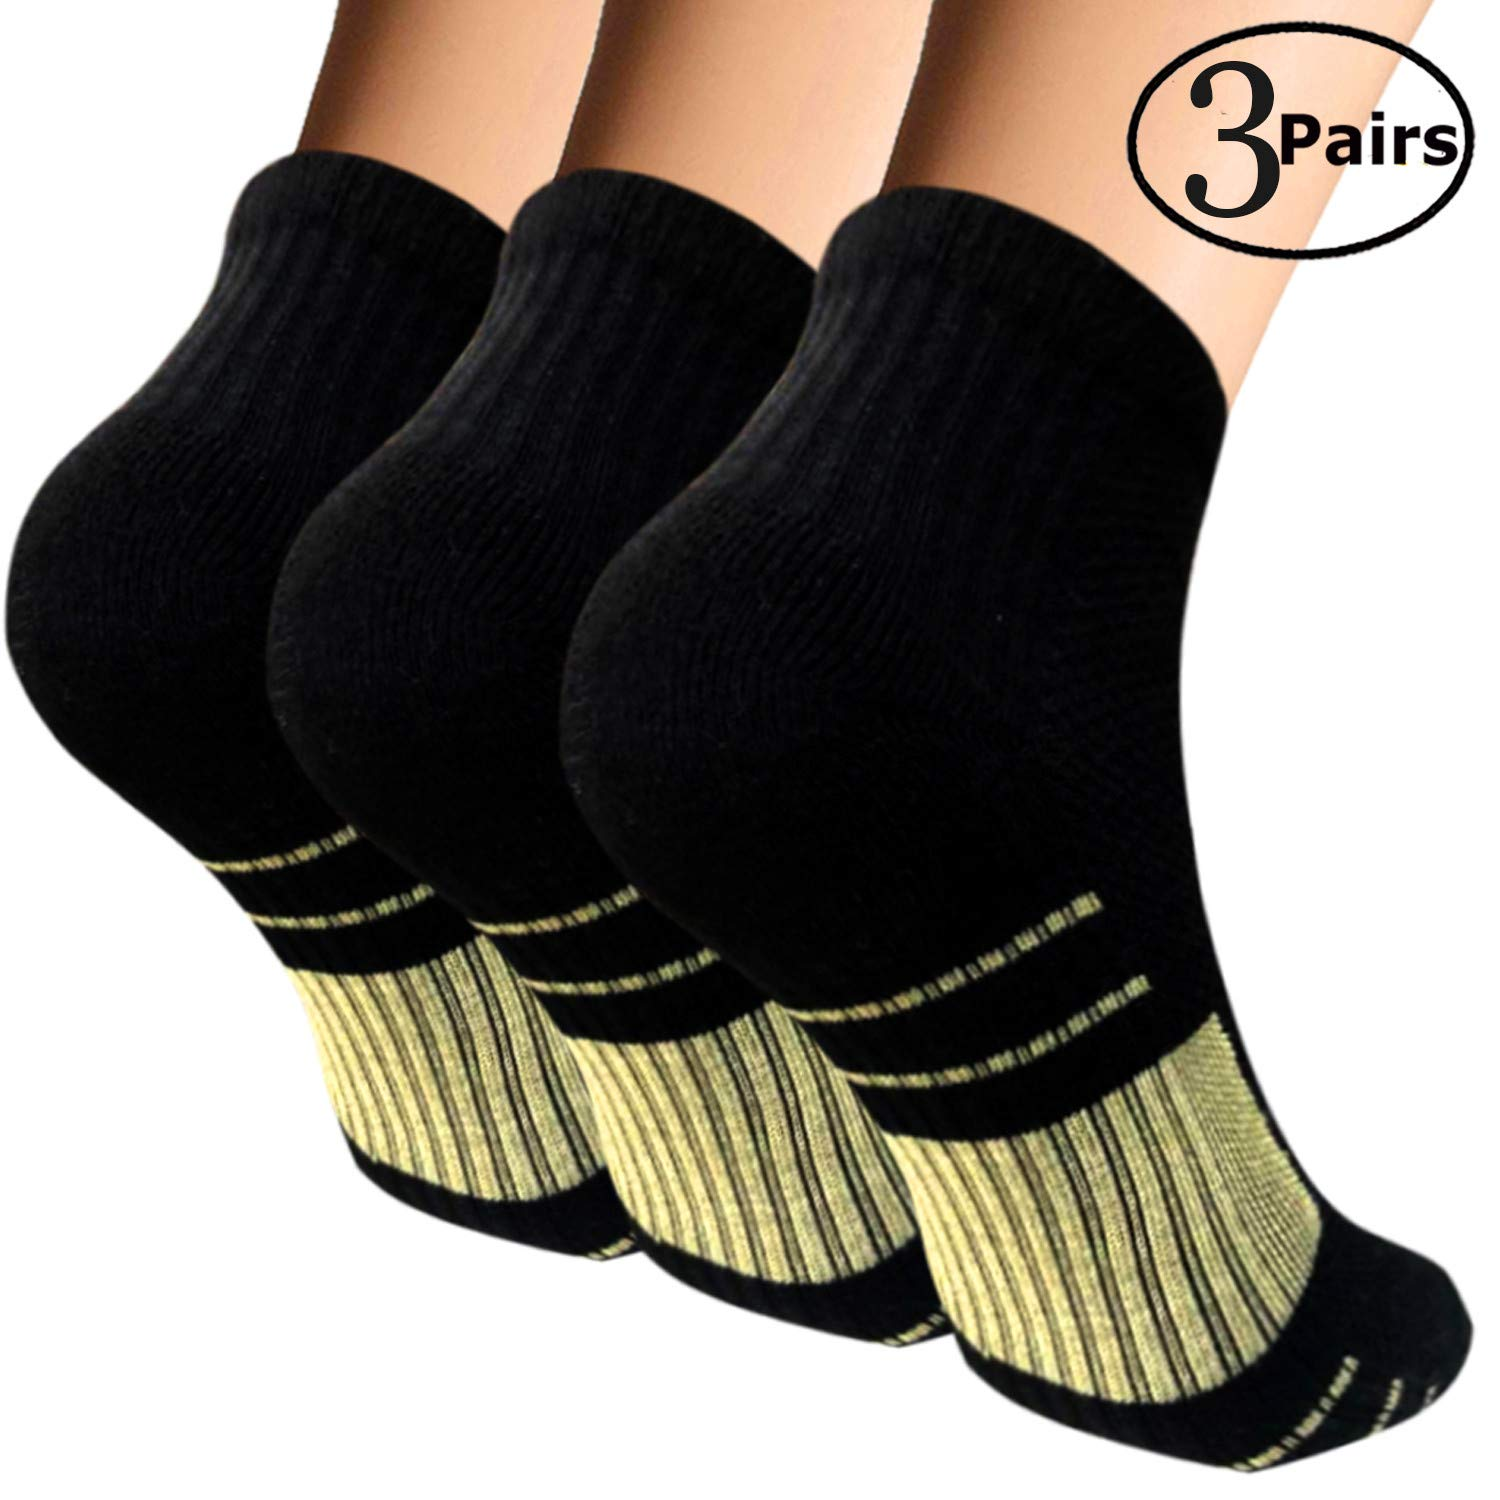 Copper Cushion Running Athletic Socks For Women Men - Antibacterial Cotton Crew Ankle Socks (3 Pairs Black, S/M)